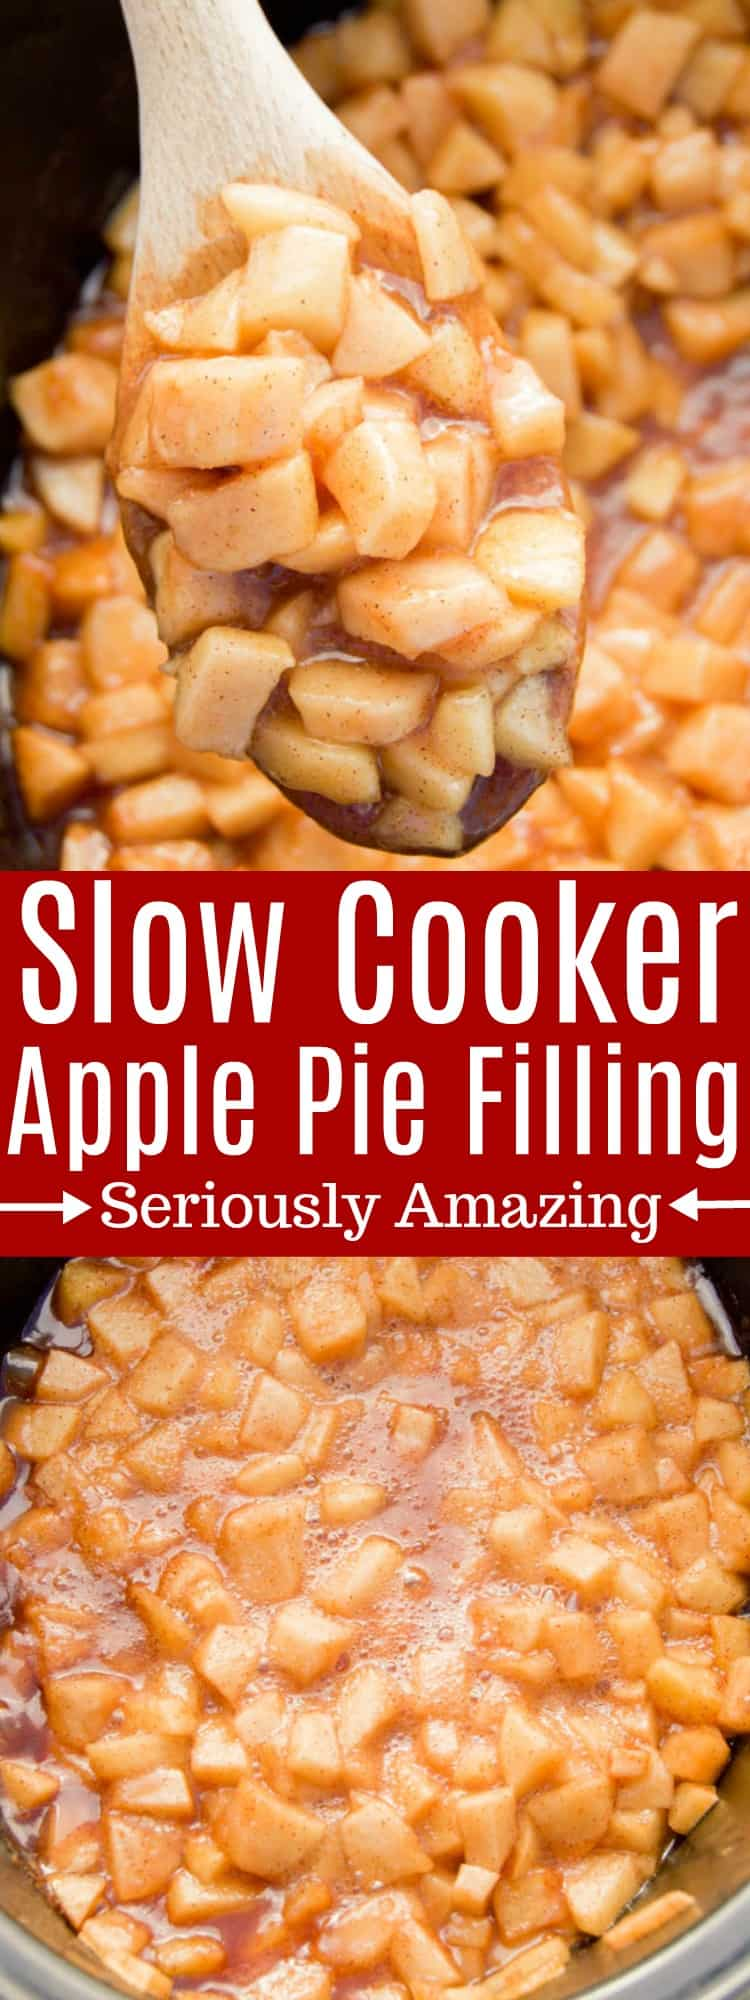 Slow Cooker Apple Pie Filling